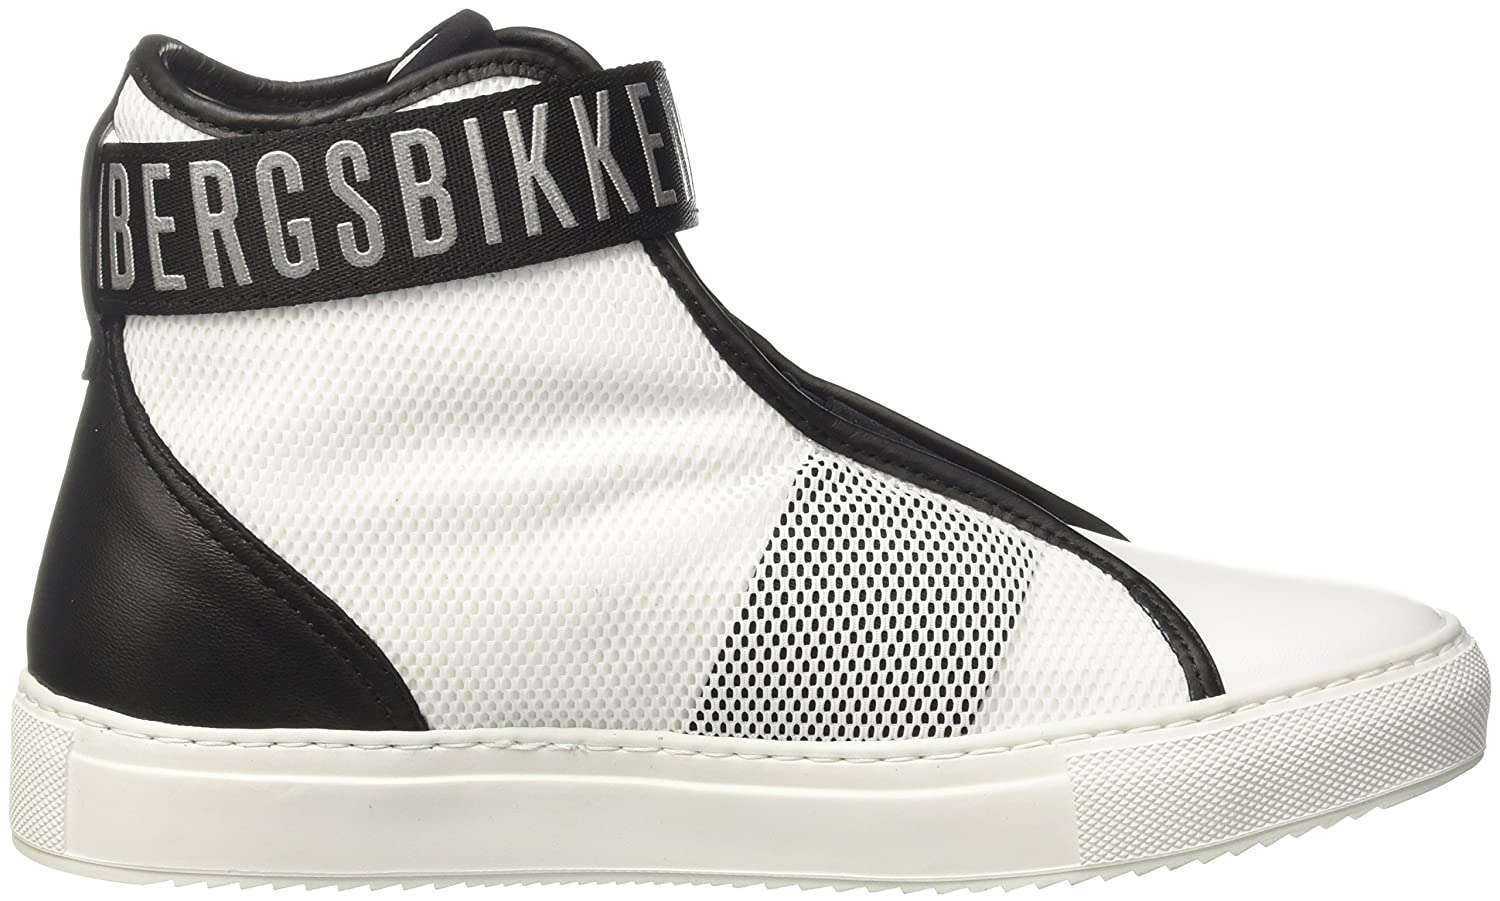 Bikkembergs Rubb-ER 752 Mid Shoe M Leather, Baskets Hautes Femme, Blanc (White/Black), 36 EU